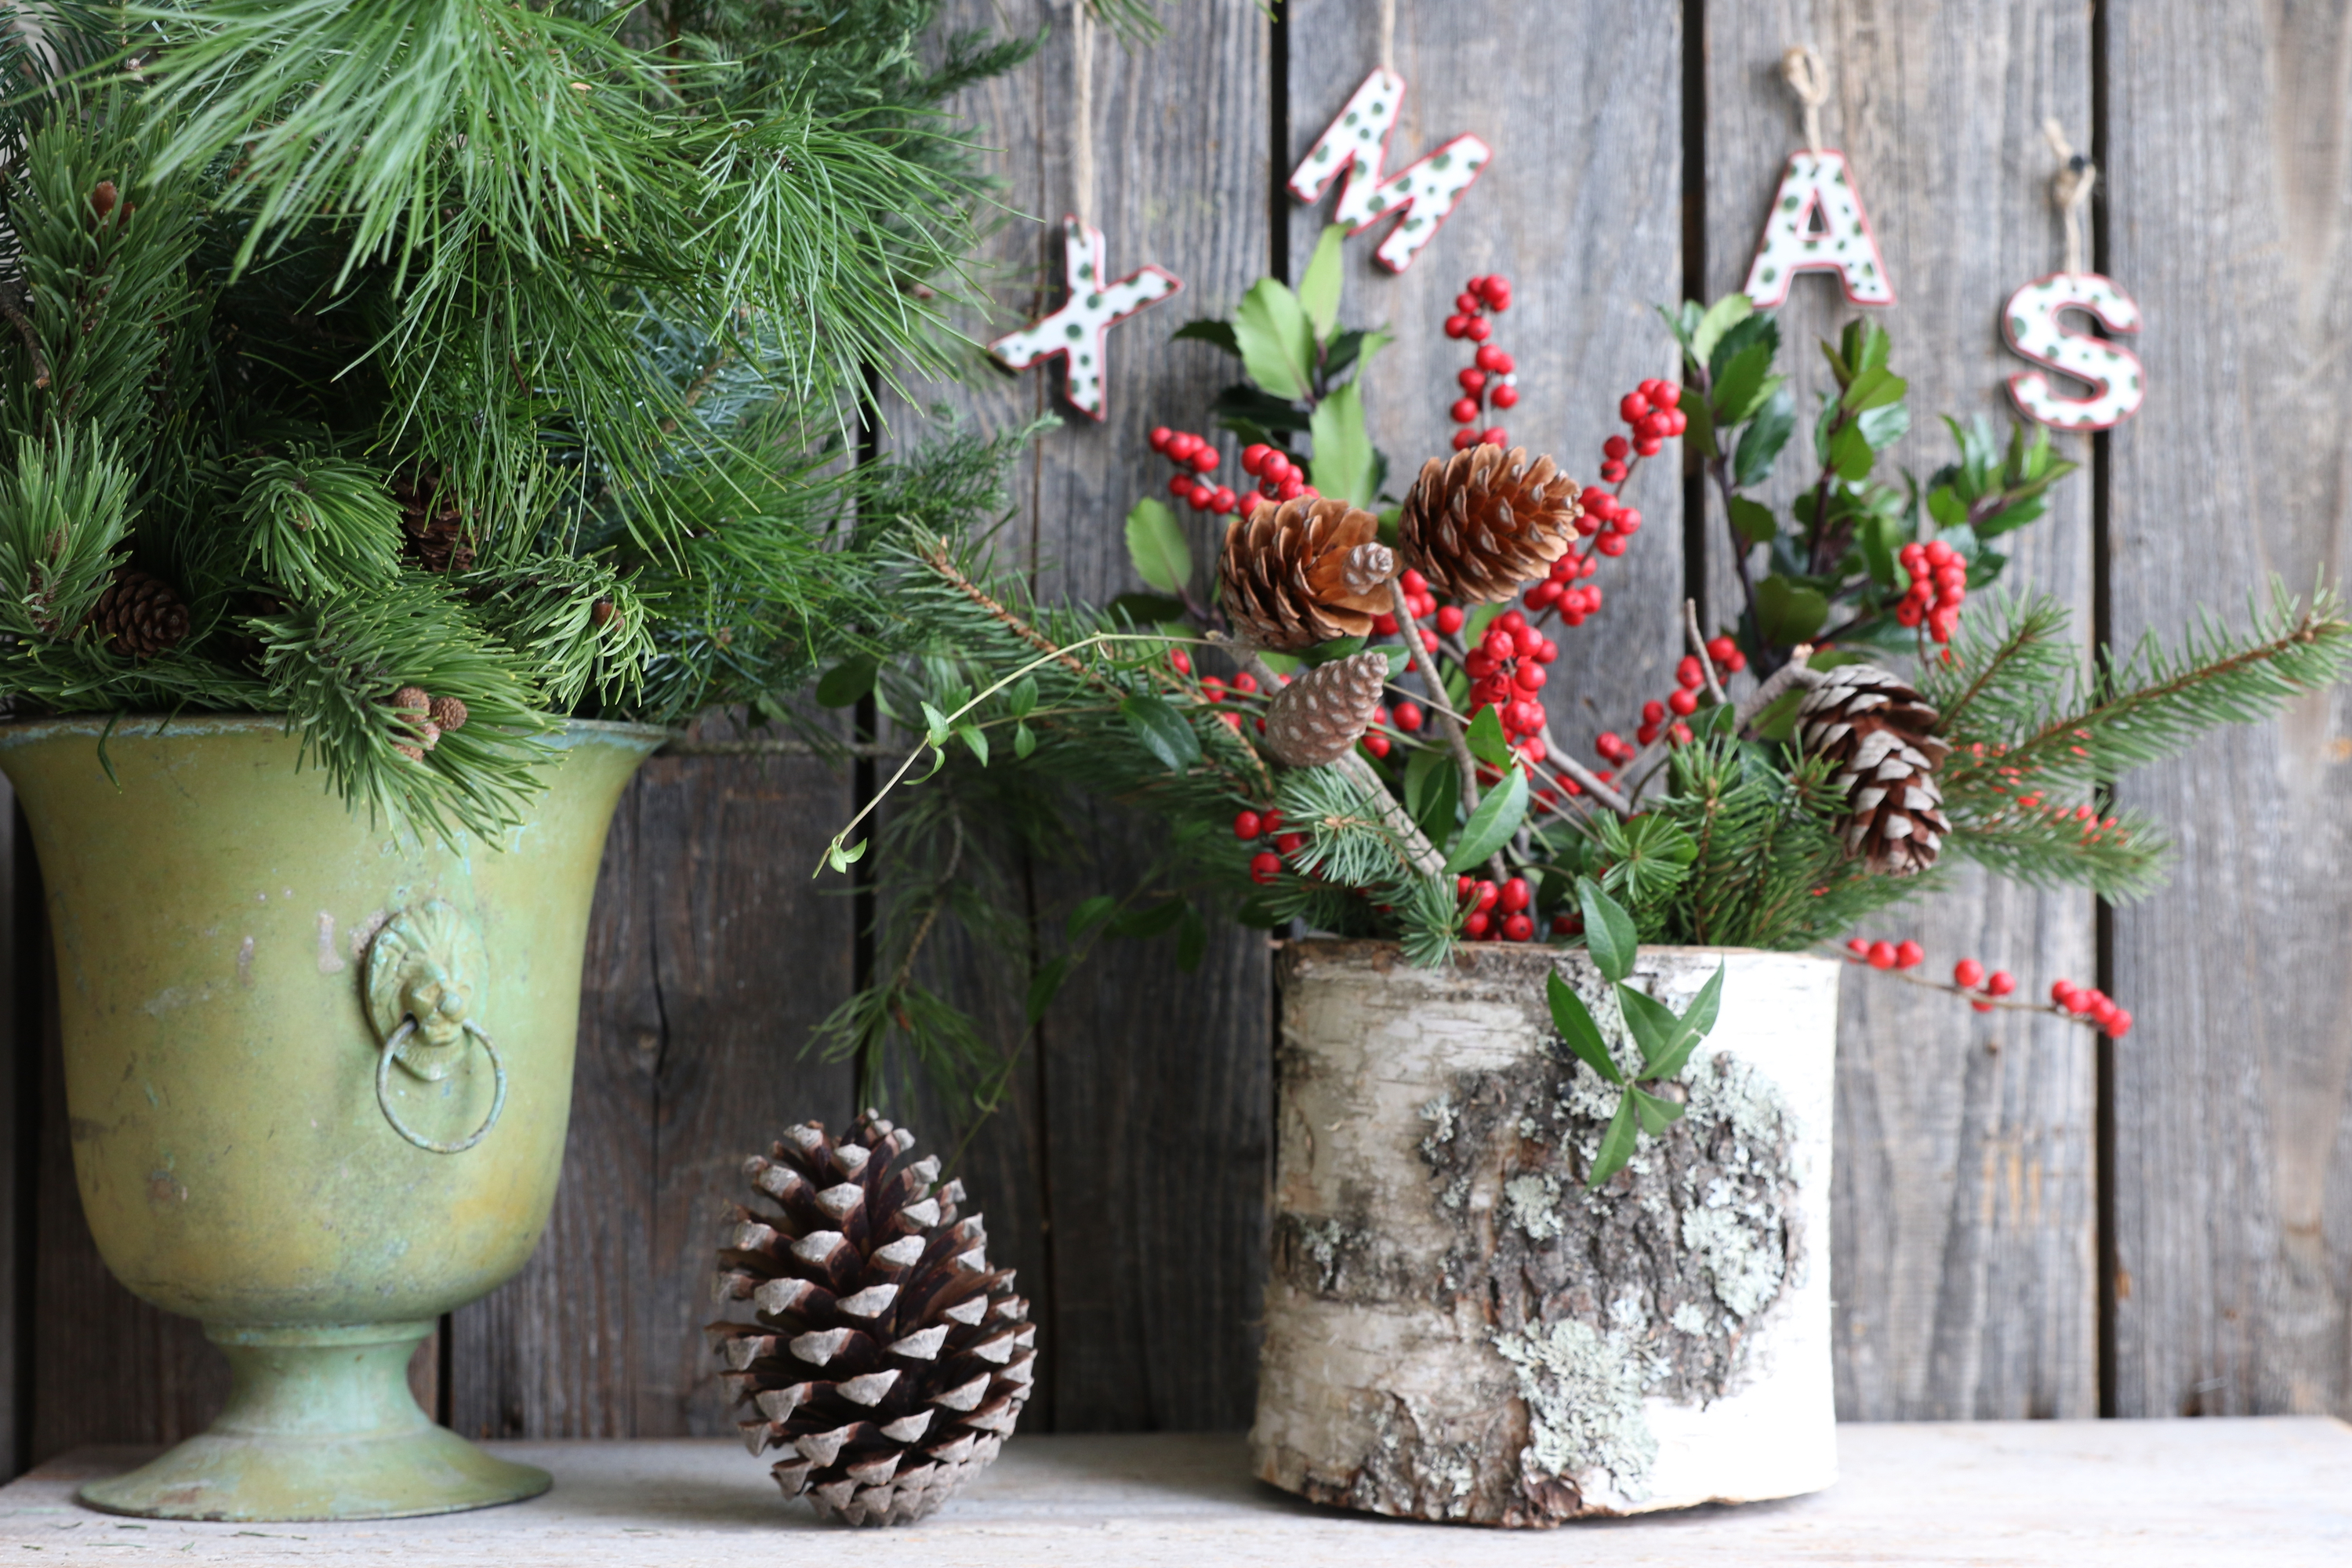 Are you in need of a centerpiece this holiday season? Why not make one out of birch wood? These birch wood Christmas decor ideas are so cute and easy to make. Birch Christmas Craft Decorations